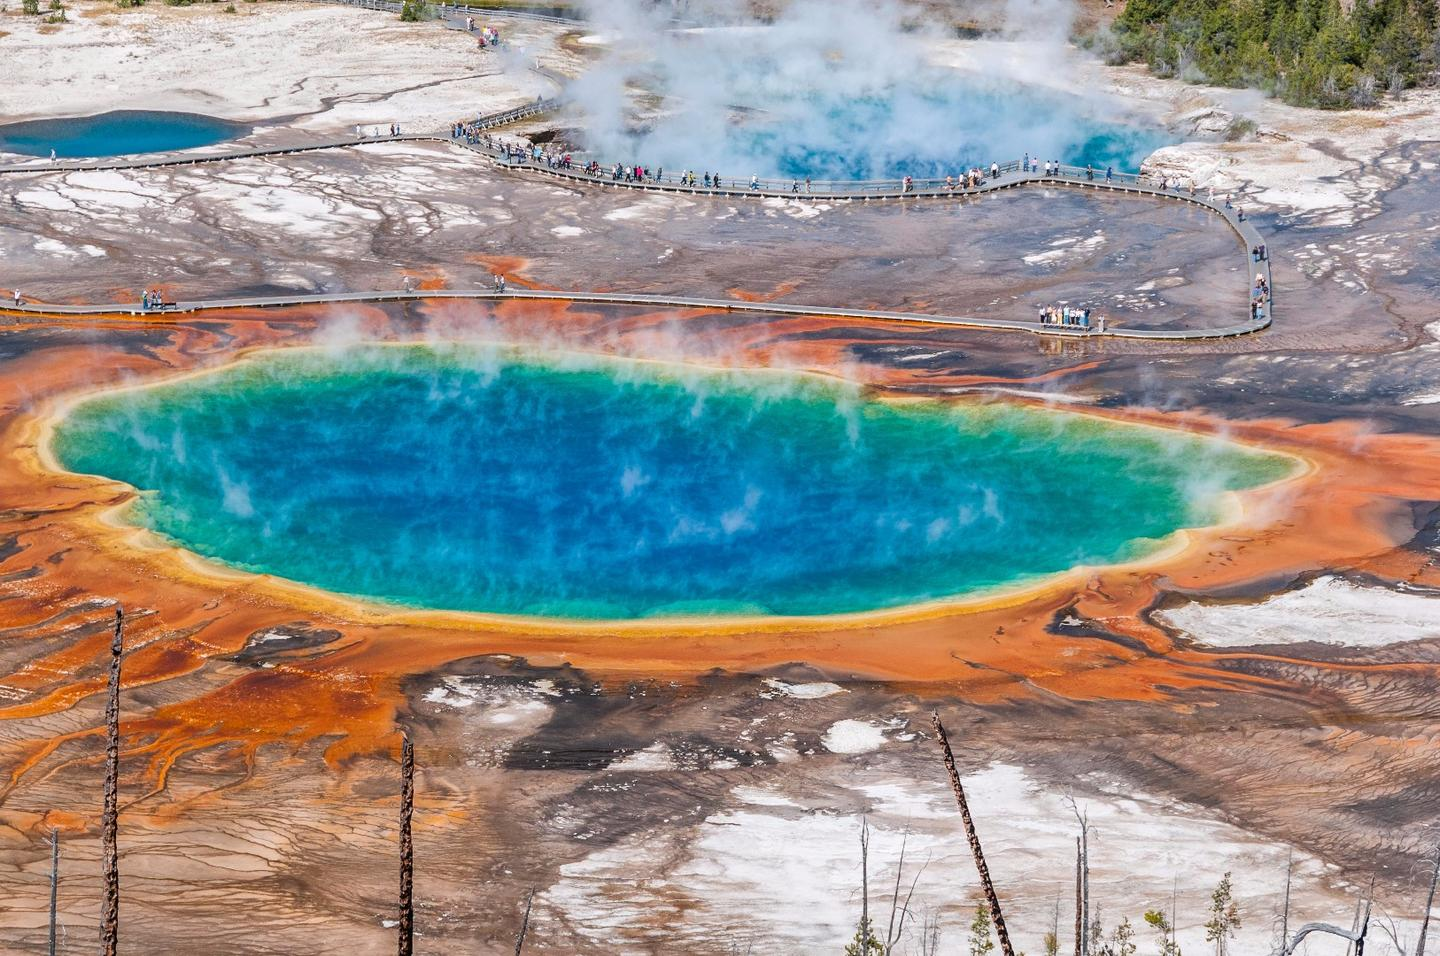 The last time the Yellowstone supervolcano erupted, it caused a climate-altering volcanic winter